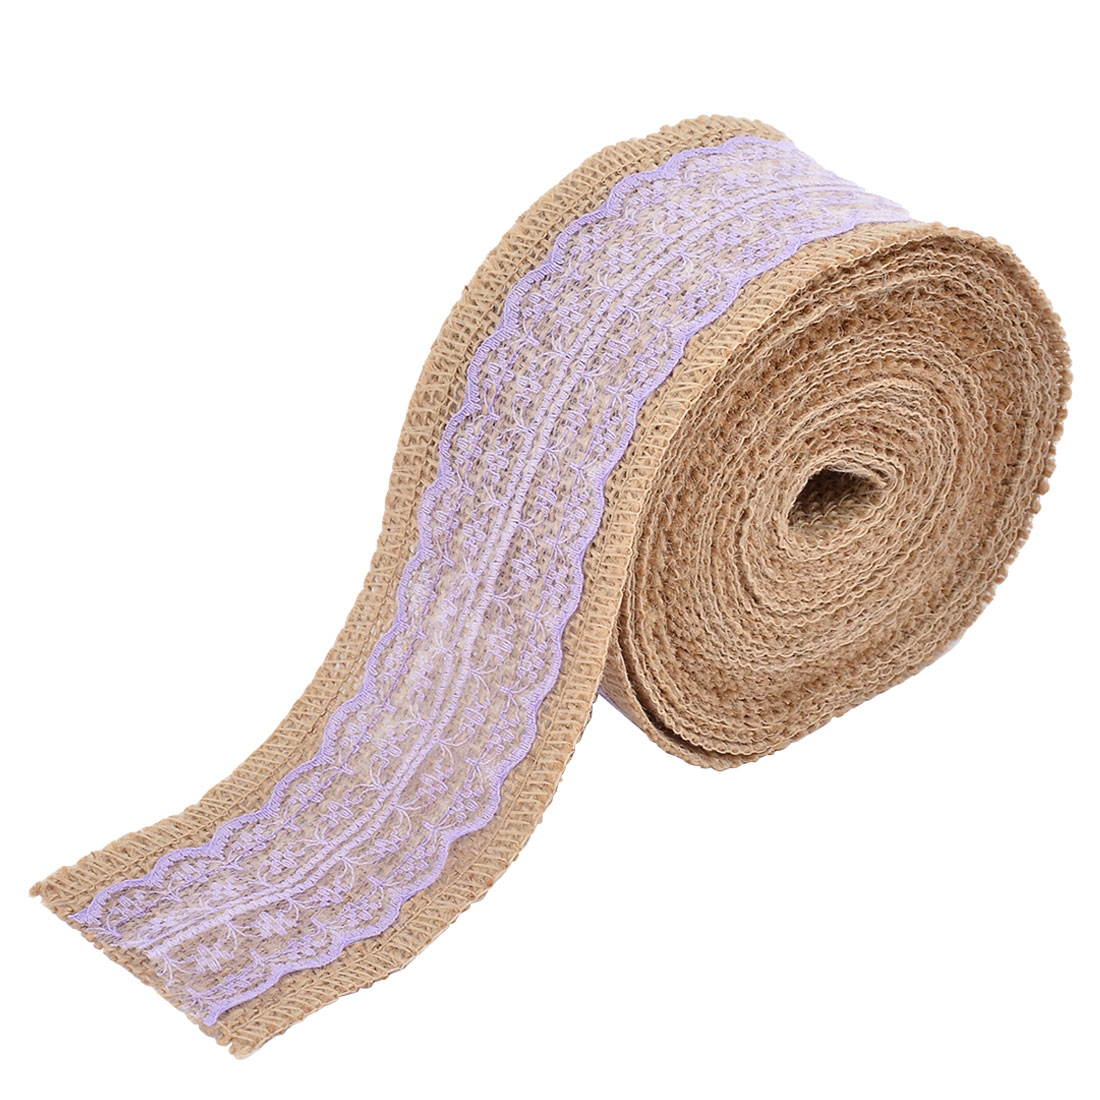 Burlap Rustic Style Crafting Gift Packing Ribbon Roll Light Purple 6.6 Yards